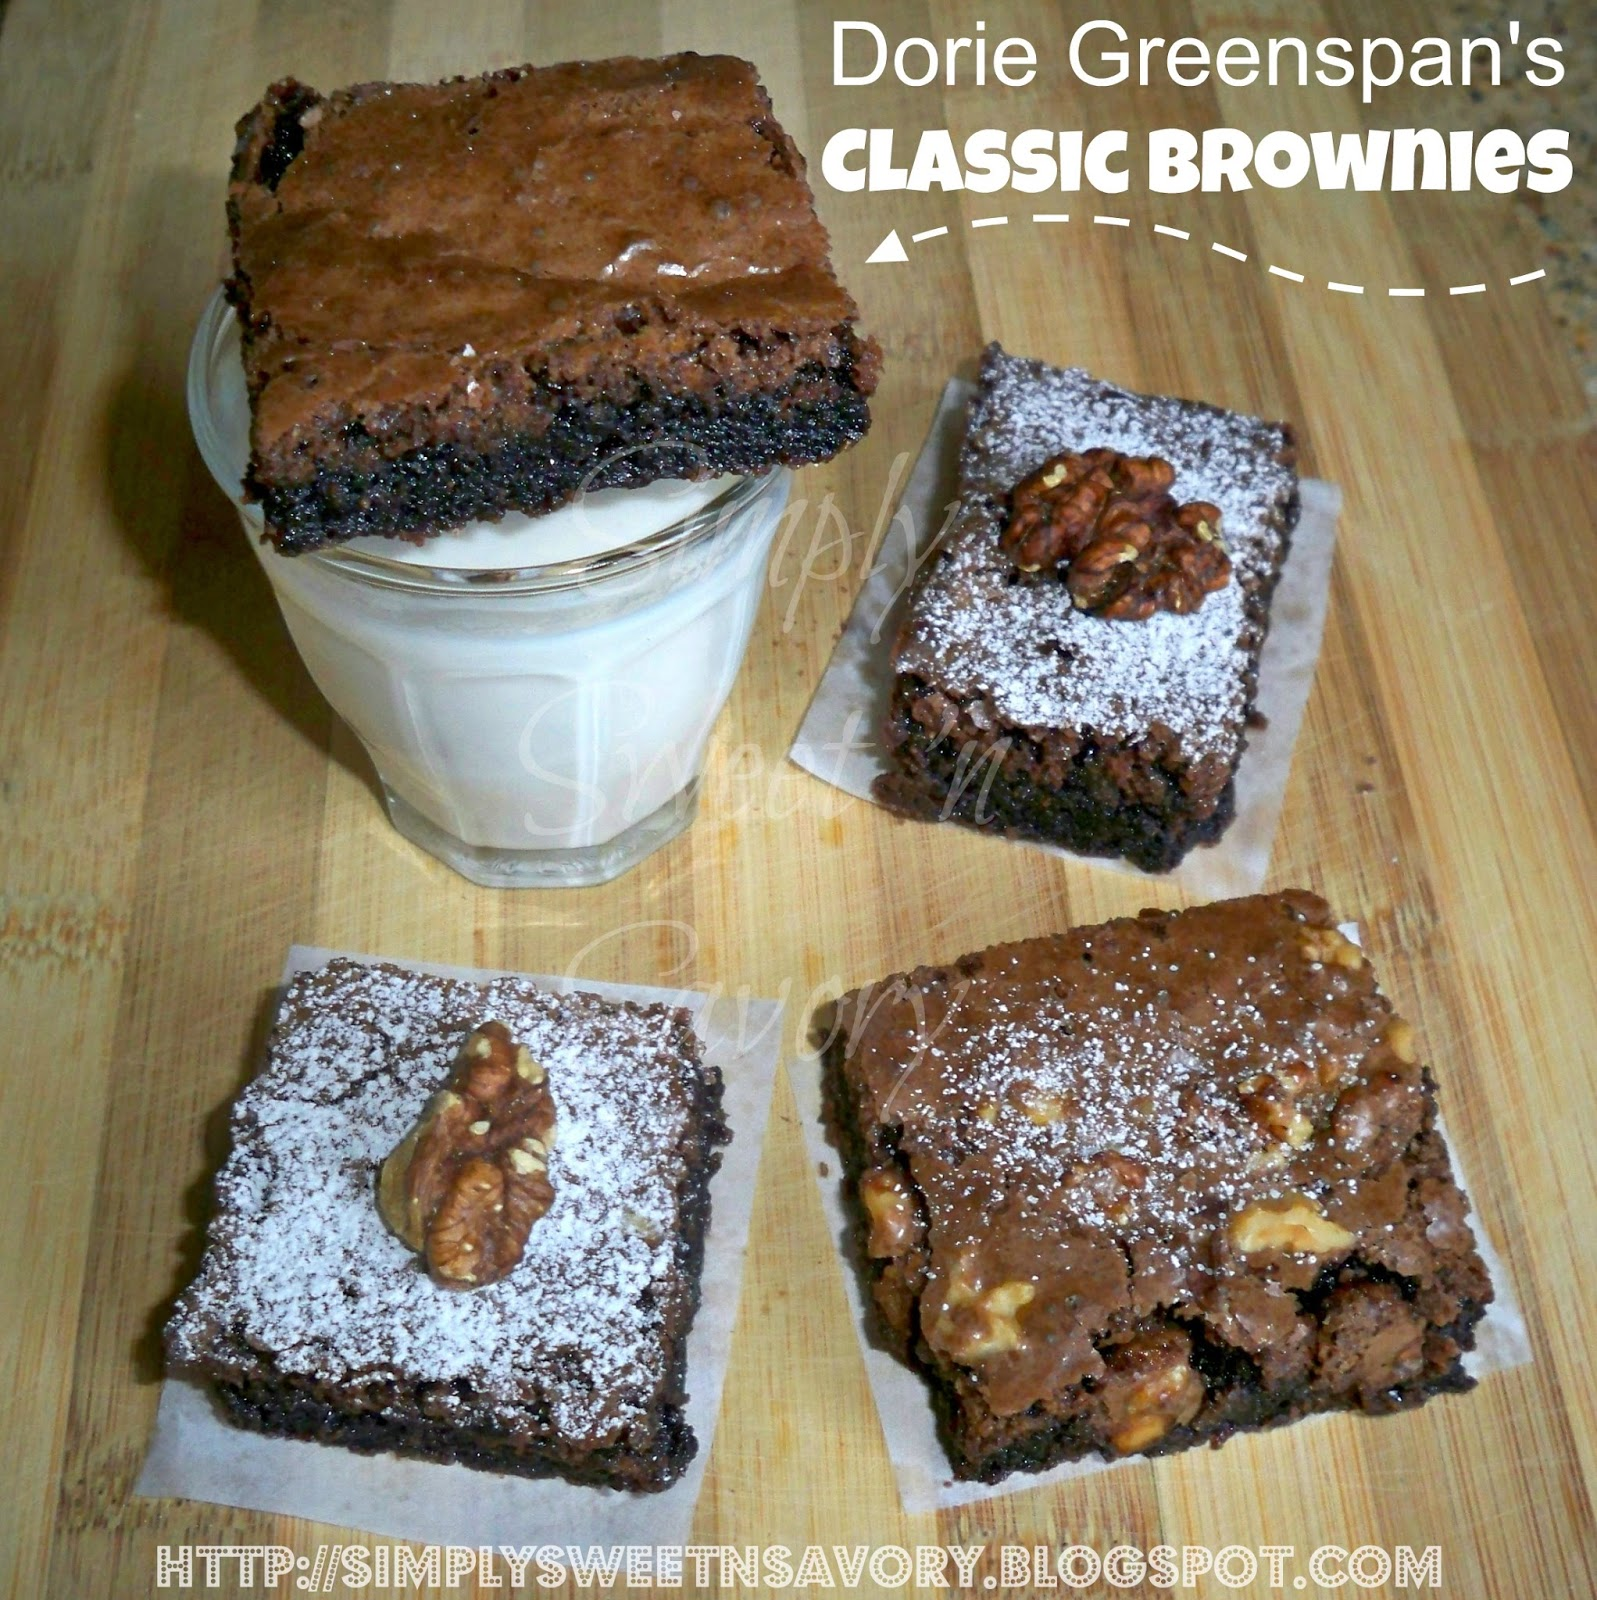 Simply Sweet 'n Savory: Dorie Greenspan's Classic Brownies